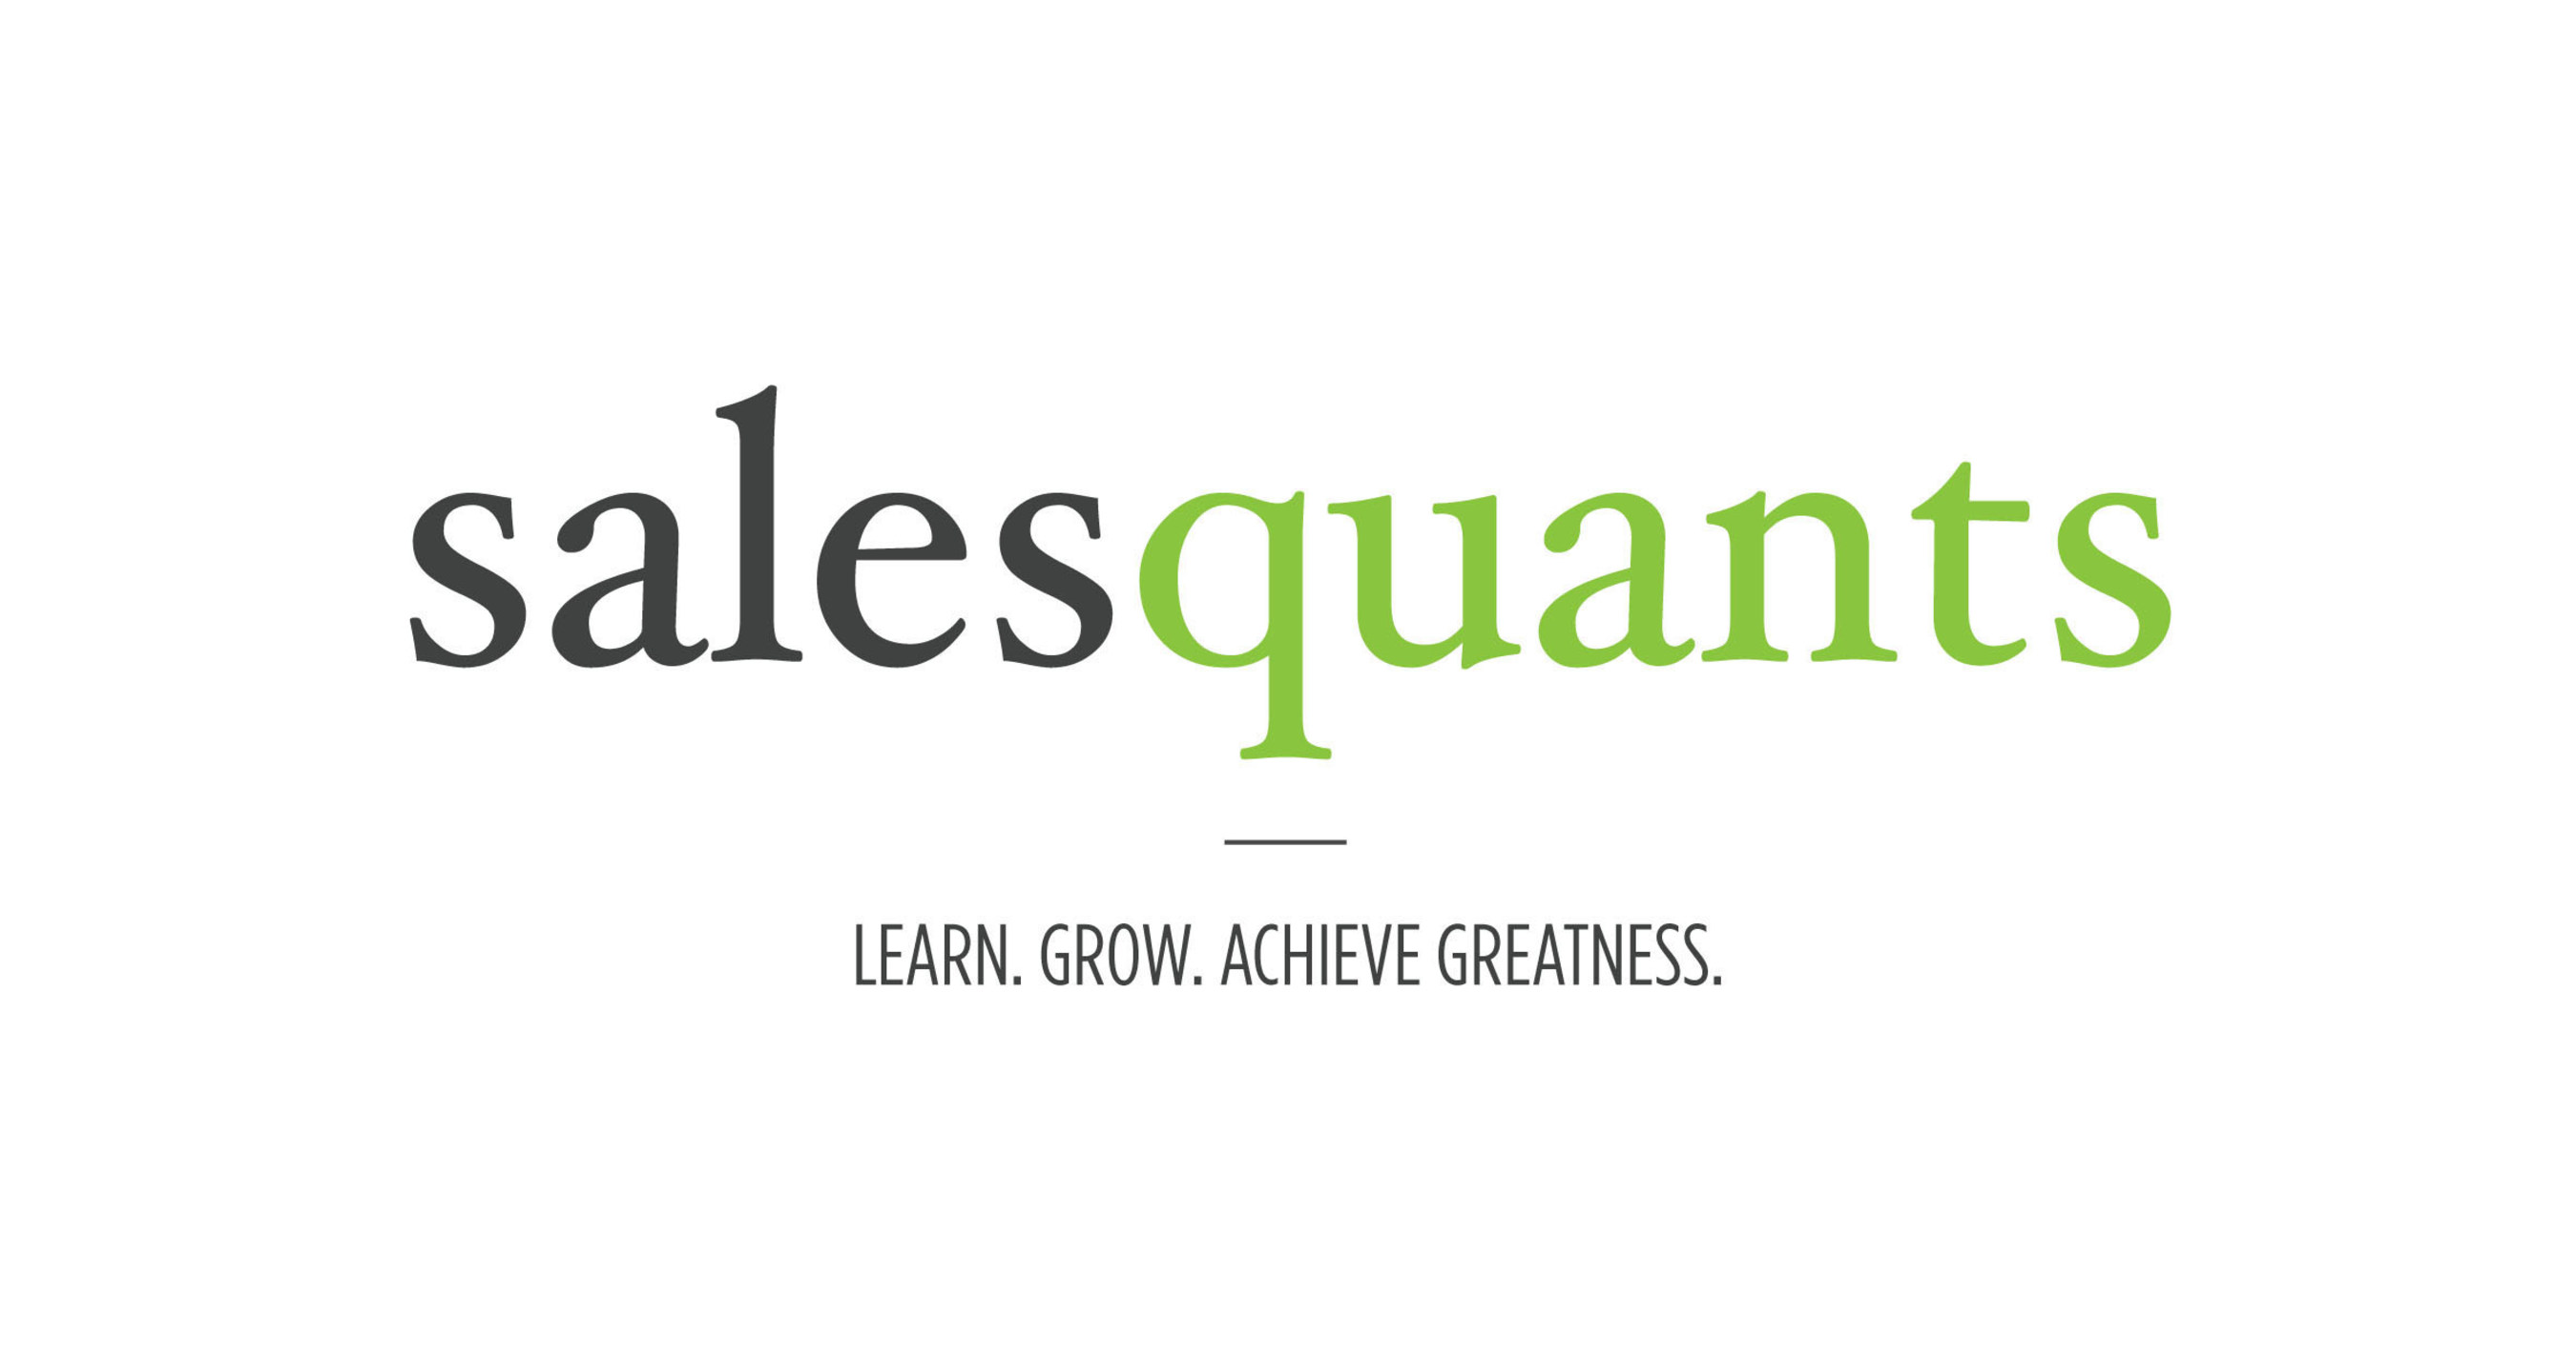 SalesQuants Launches Sales Acceleration Resources for Data-Minded Sales Leaders